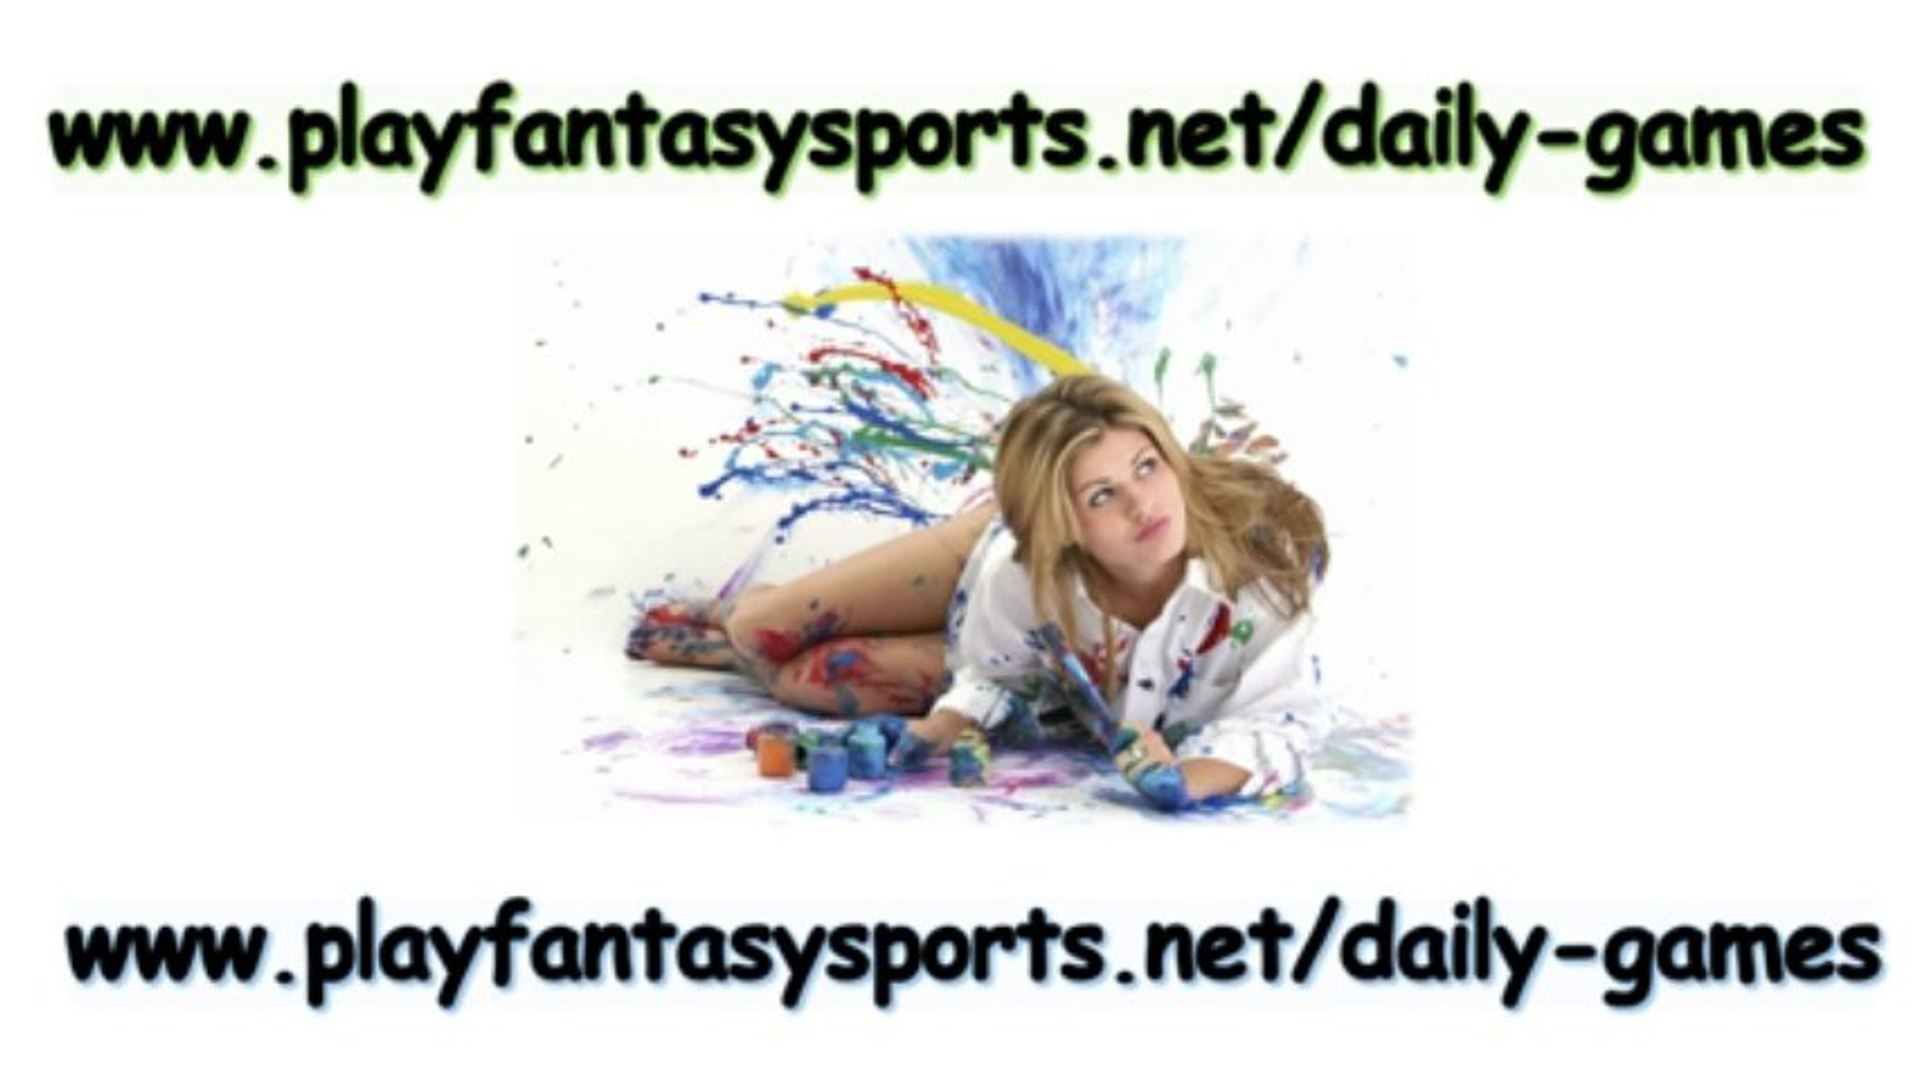 Learn How To Play Fantasy Sports Games - Do you want to learn how to play Fantasy Sports games? Why